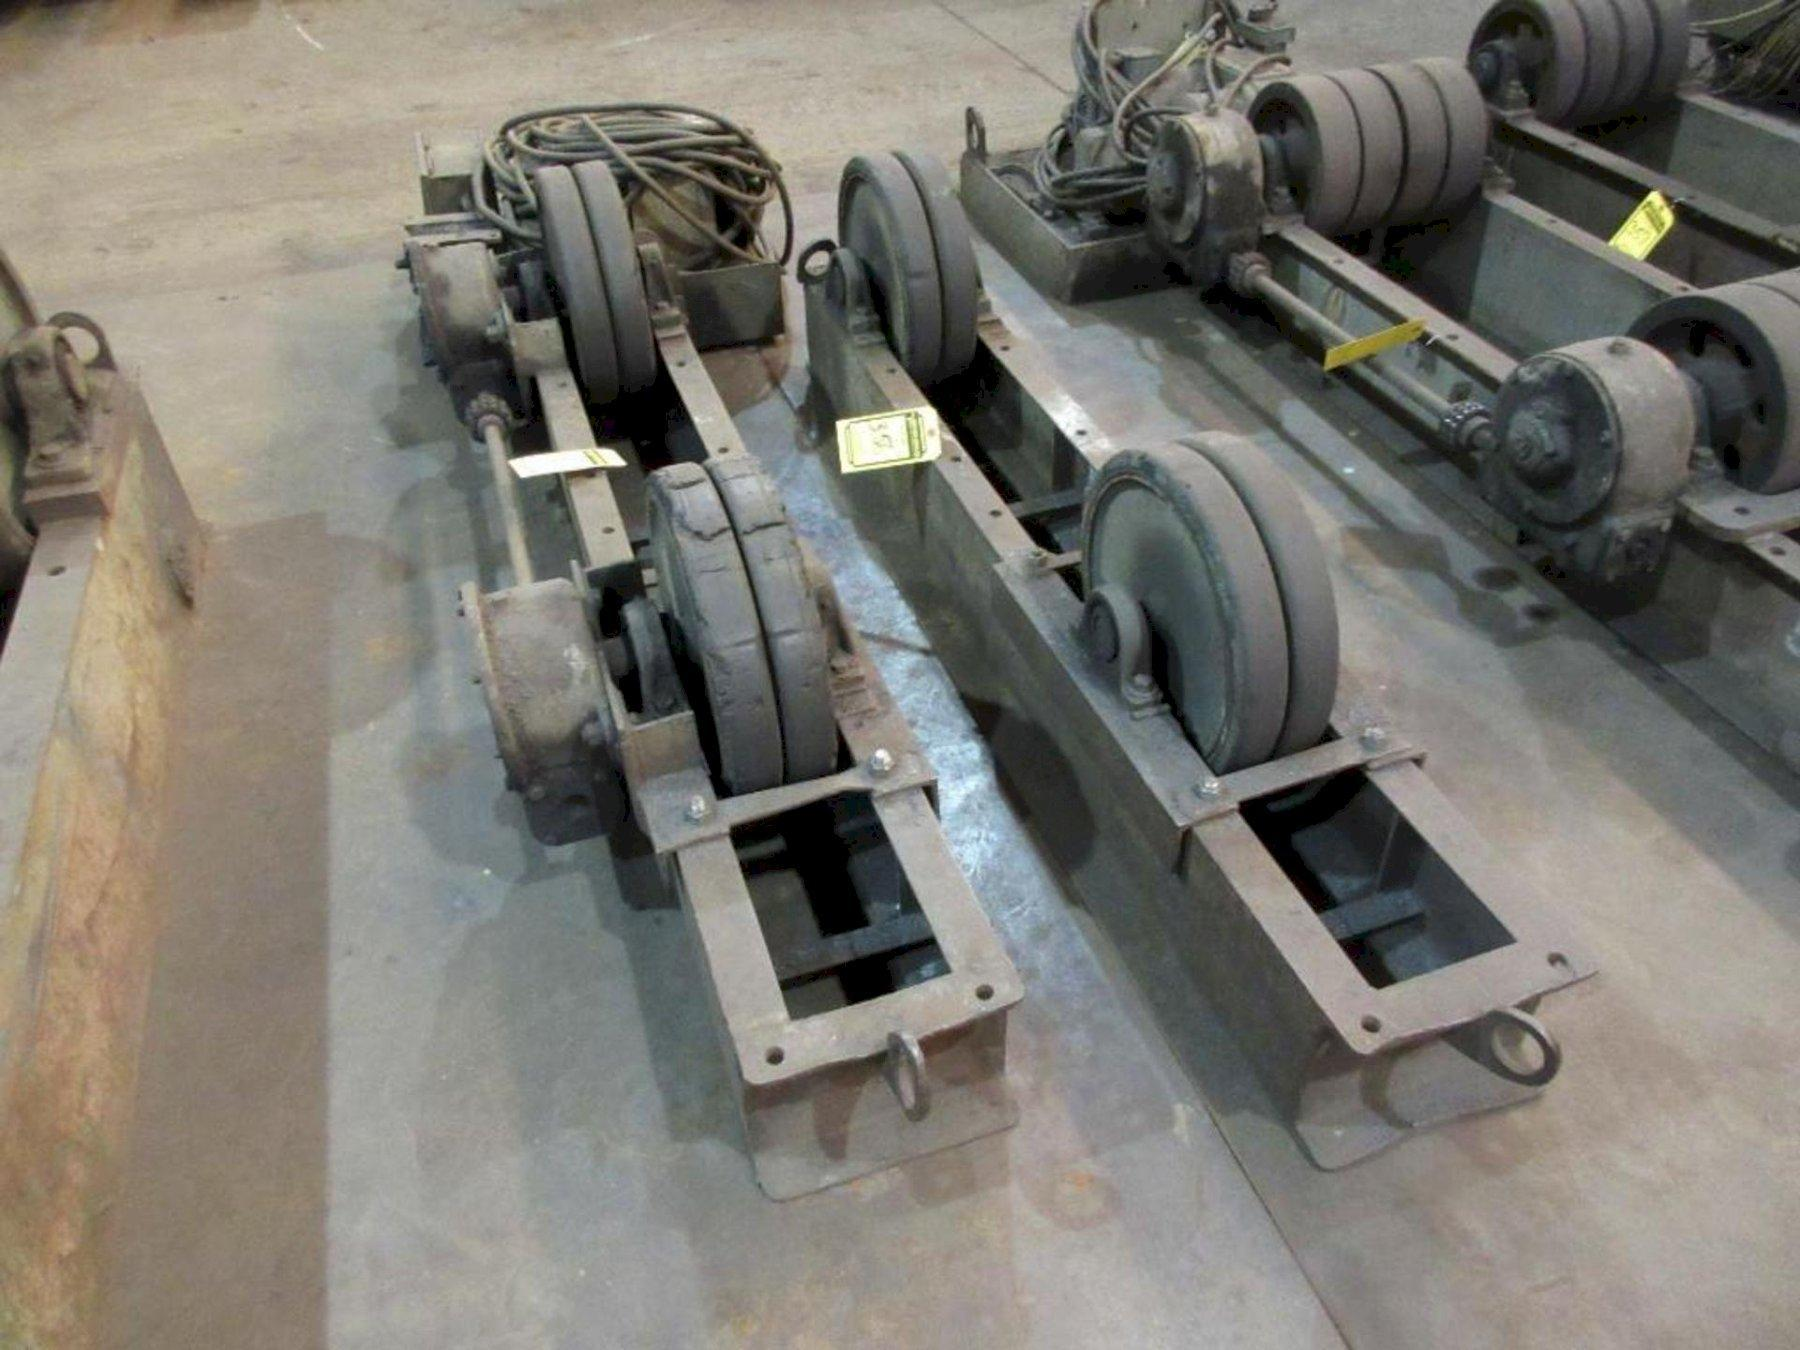 6 TON/12,000 LBS WEBB POWERED TANK TURNING ROLL SET. STOCK # 0519421